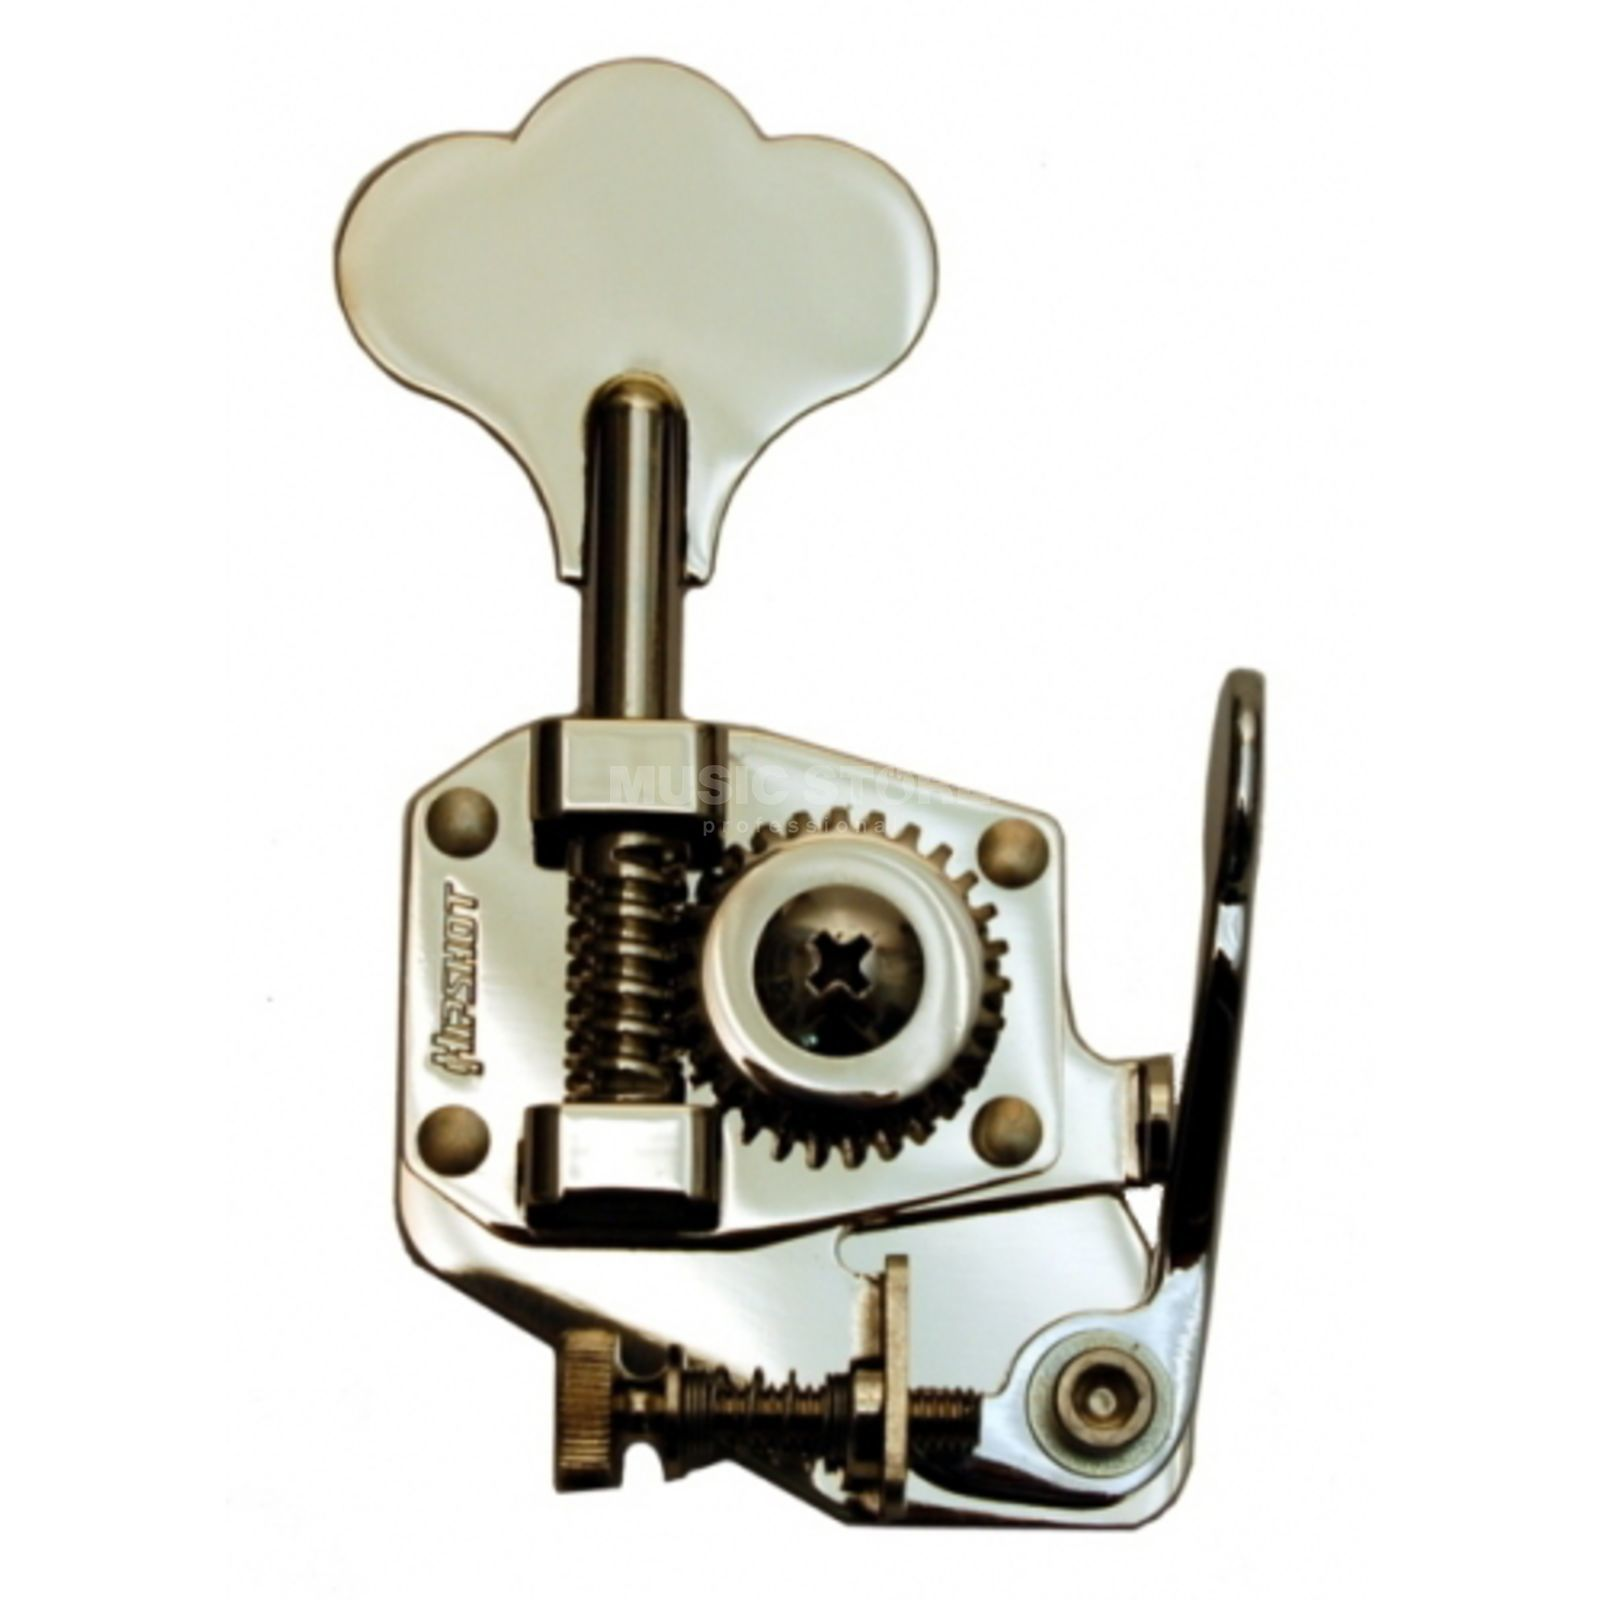 Hipshot D'Tuner Extender Key BT1 Chrome Product Image